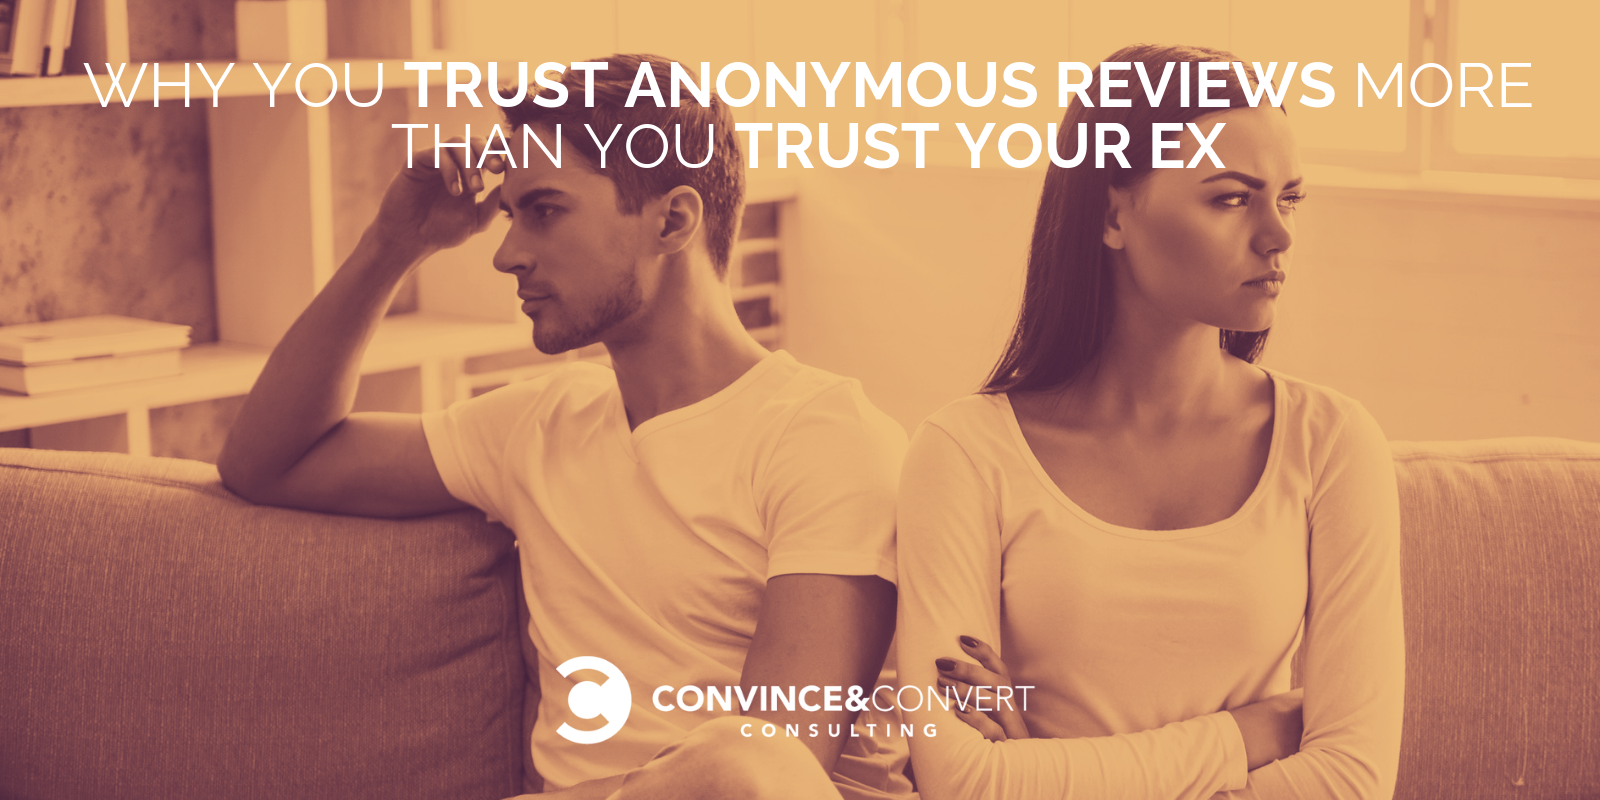 trust anonymous reviews ex